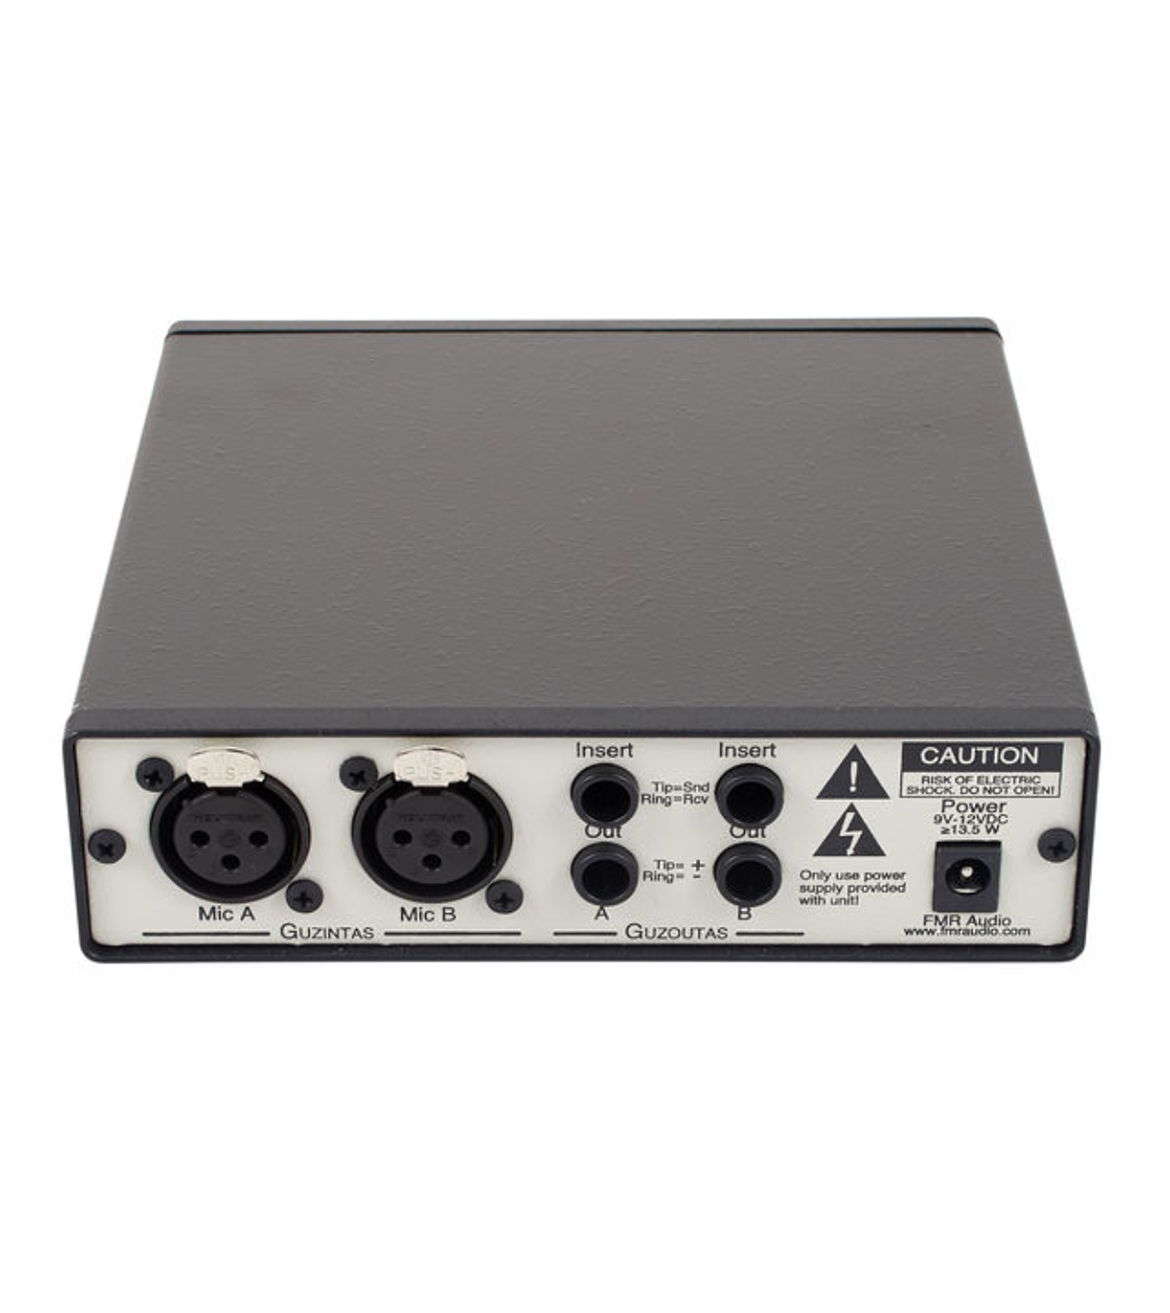 PREAMP P/MICROFONE FMR AUDIO RNP8380 REALLY NICE PREAMP